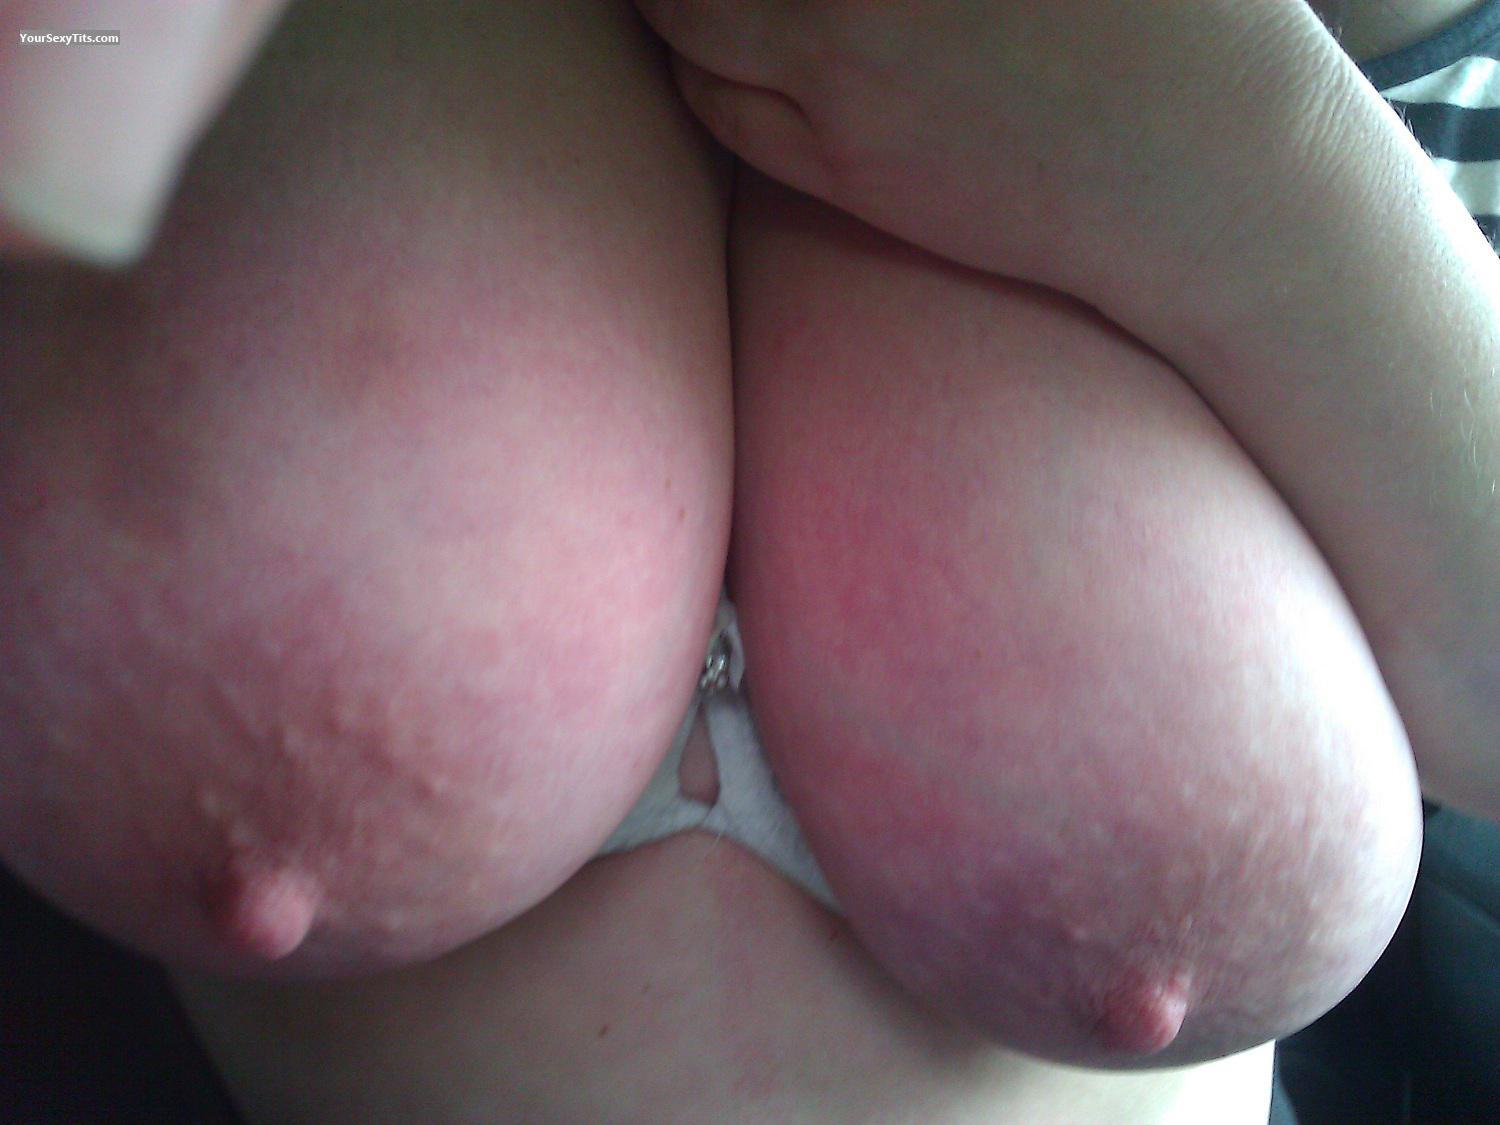 Tit Flash: Very Big Tits - Nicknack from United States